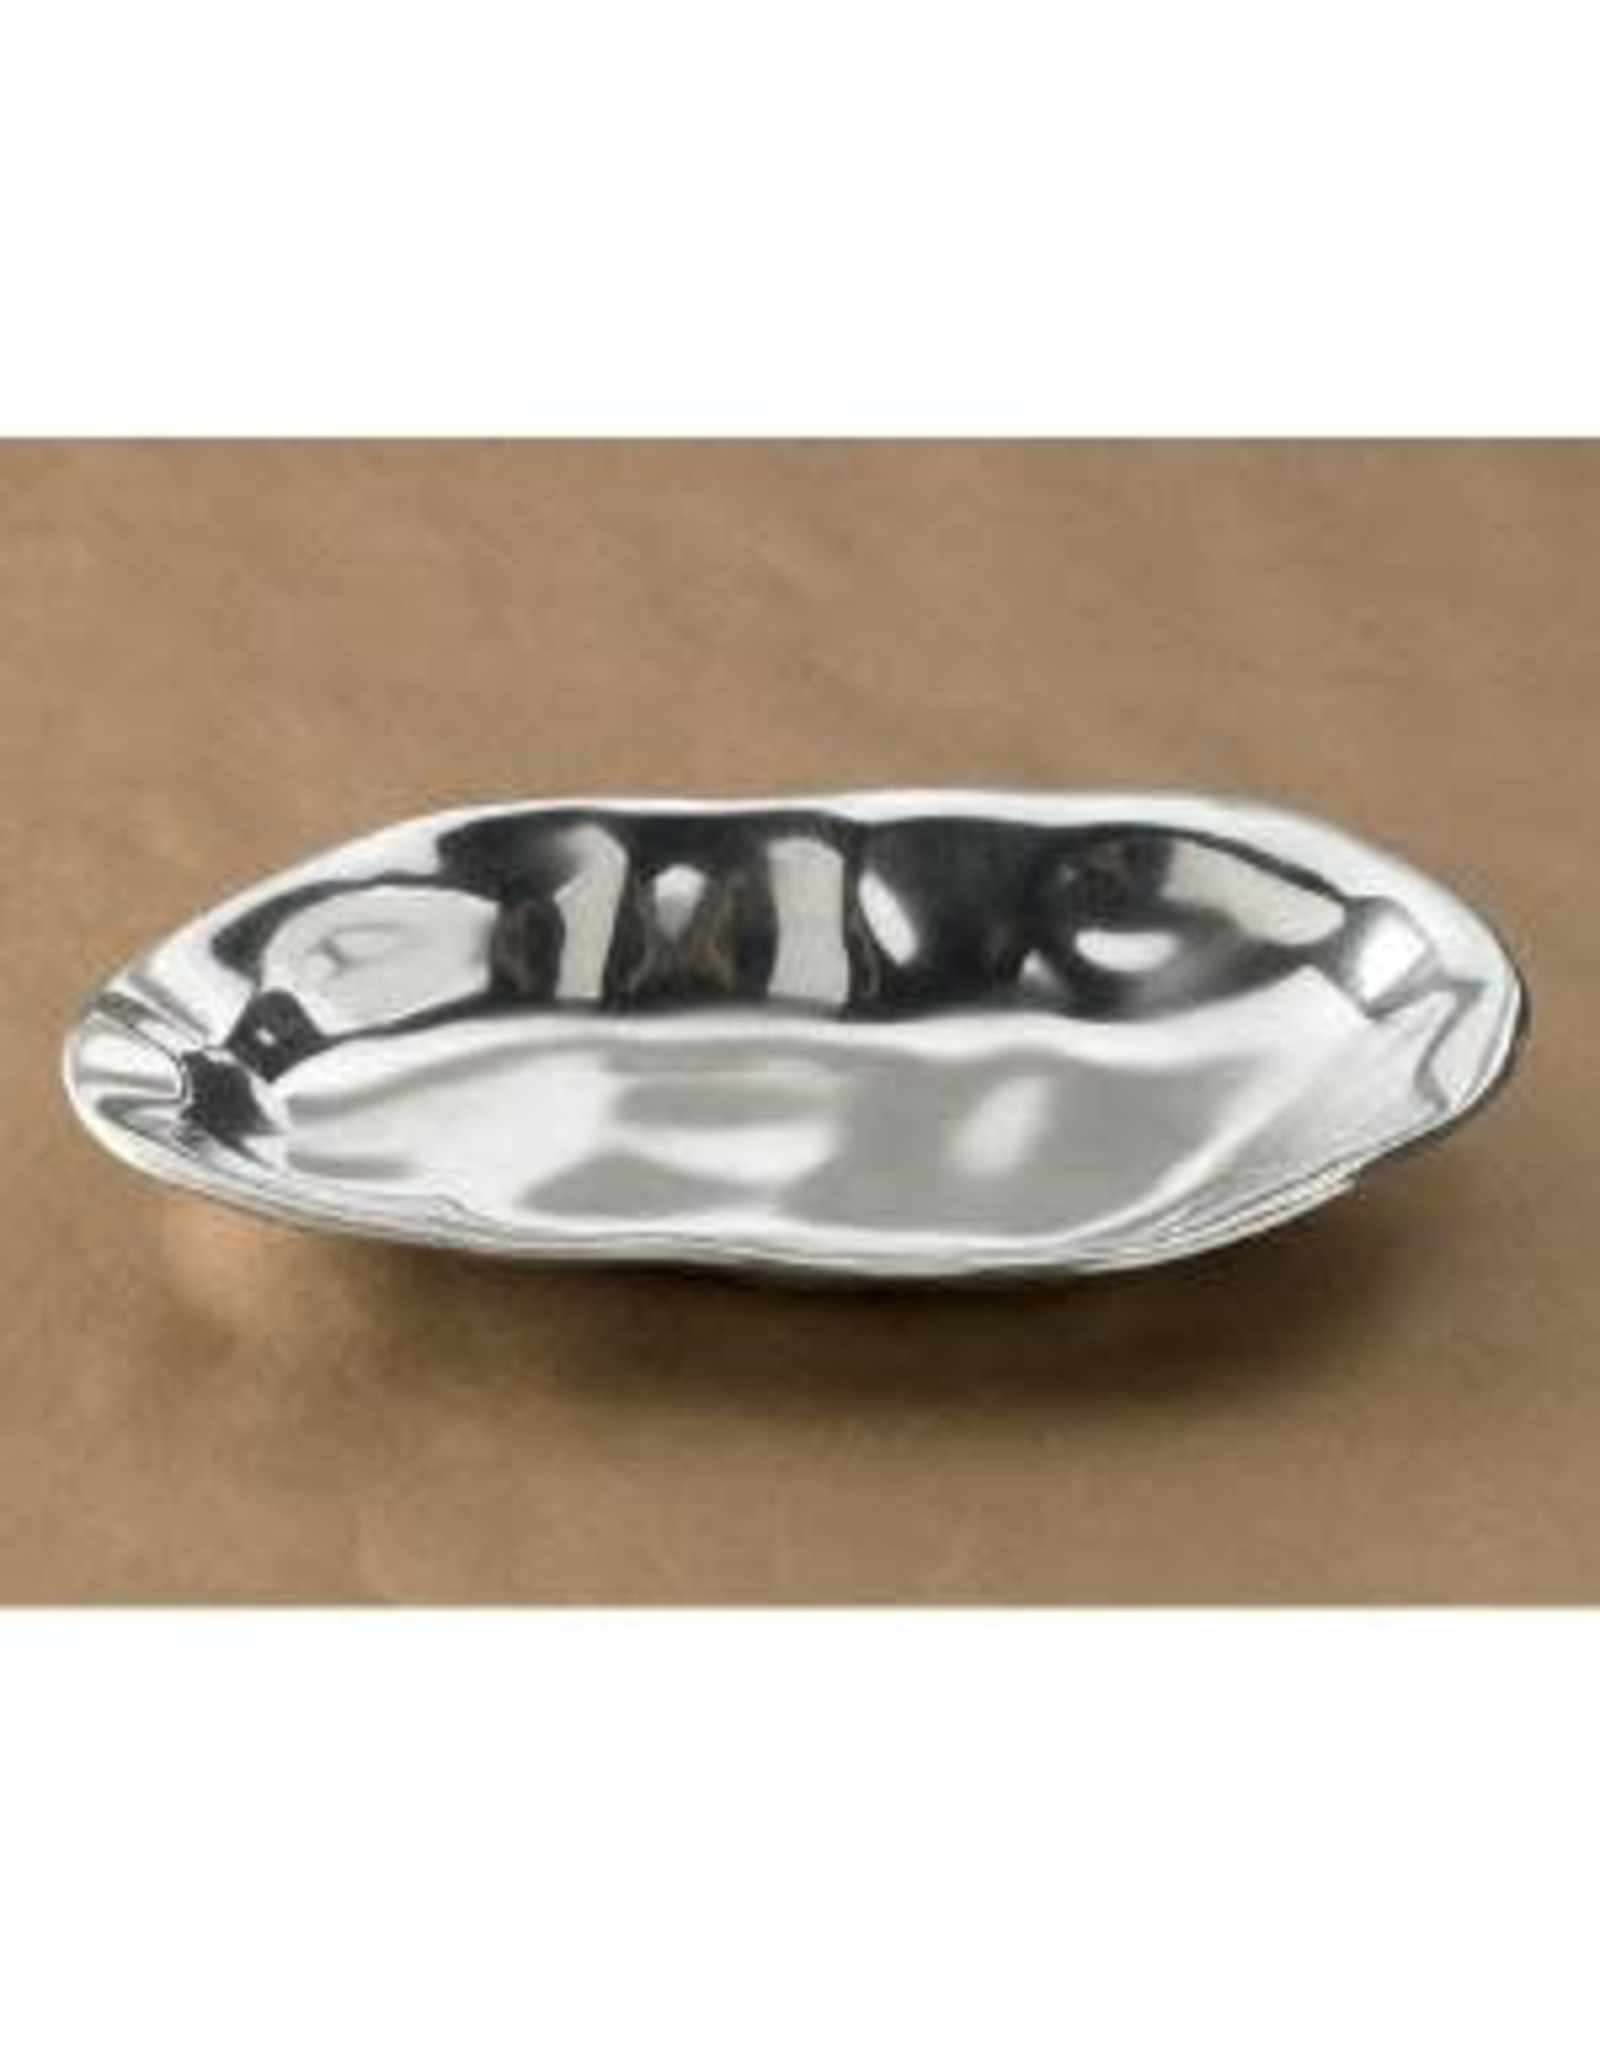 India Handicrafts Free Form Loaf Tray, 4